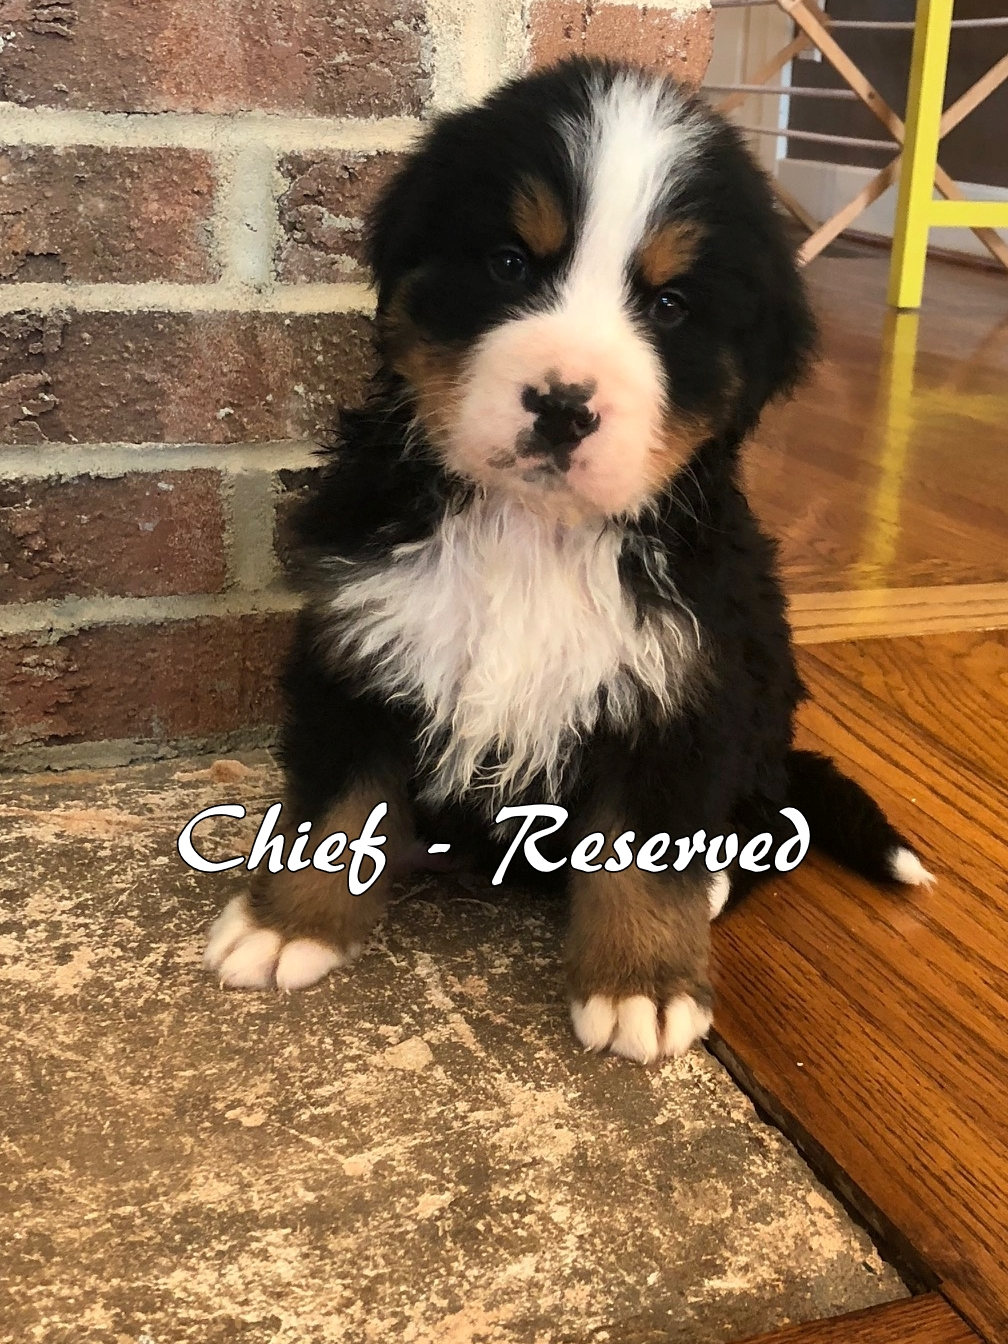 Chief - 6weeks1 resv.